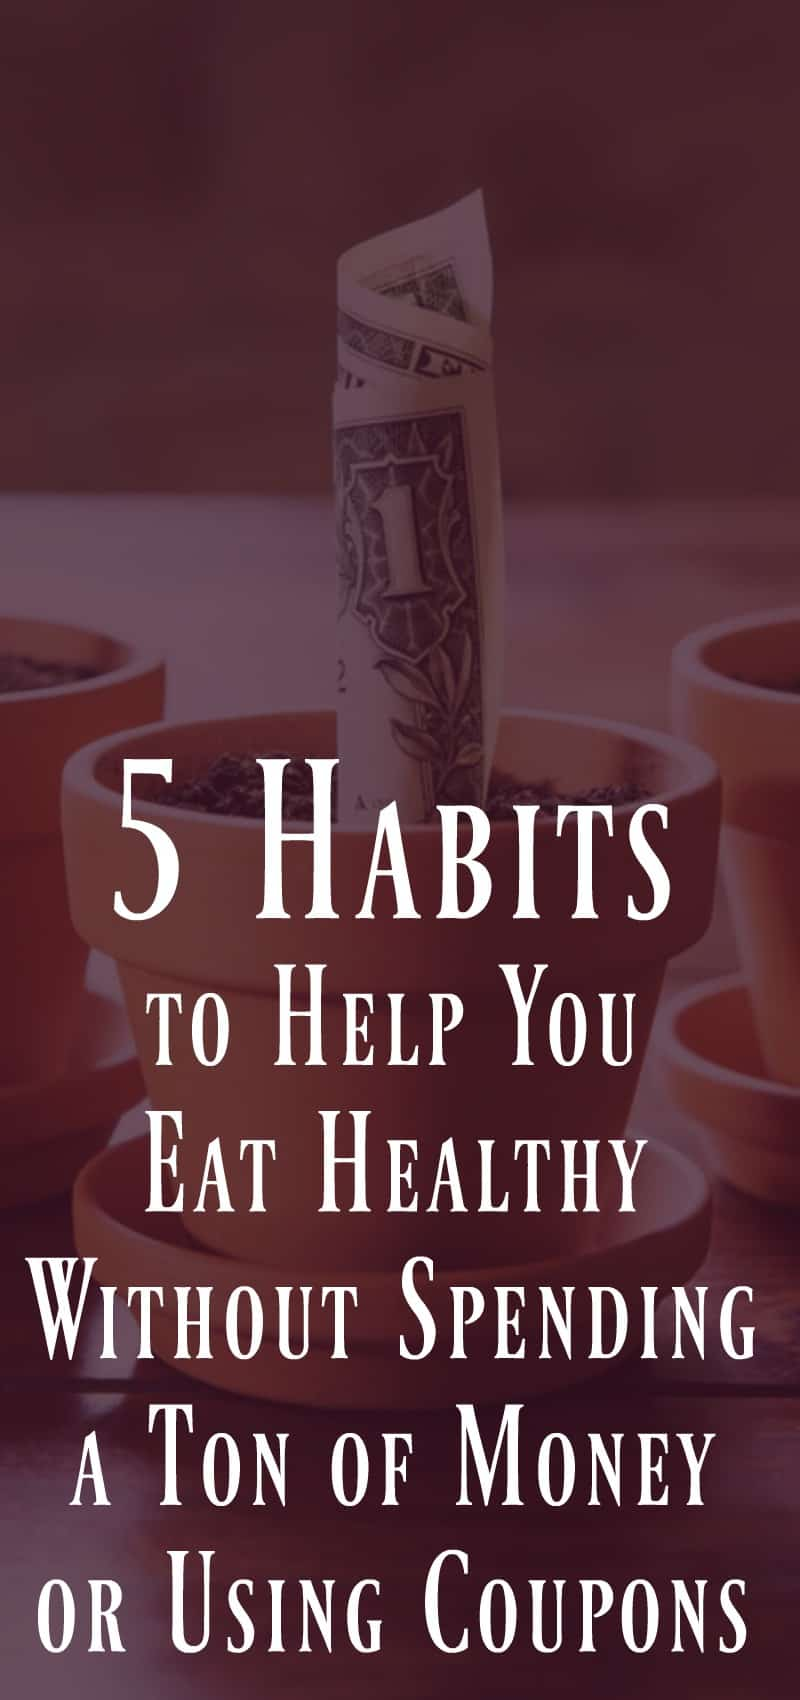 5 habits to help you eat healthy without spending a lot of money or using coupons